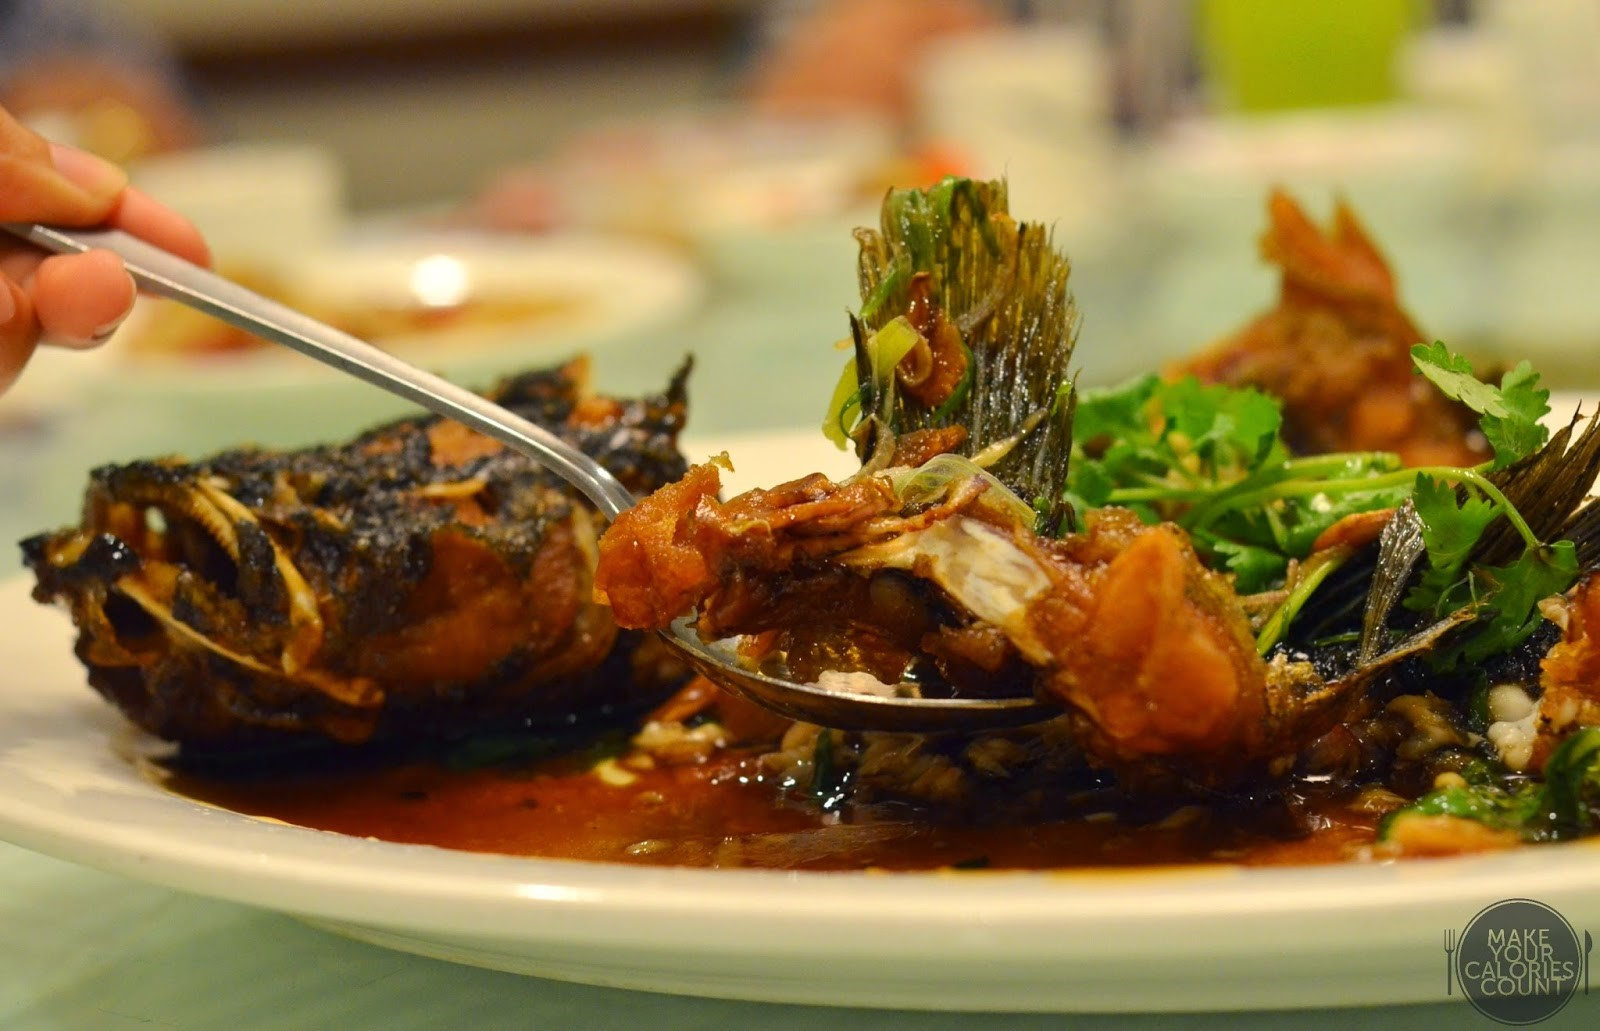 Joyden seafood restaurant perfect for family gatherings for Fried fish calories